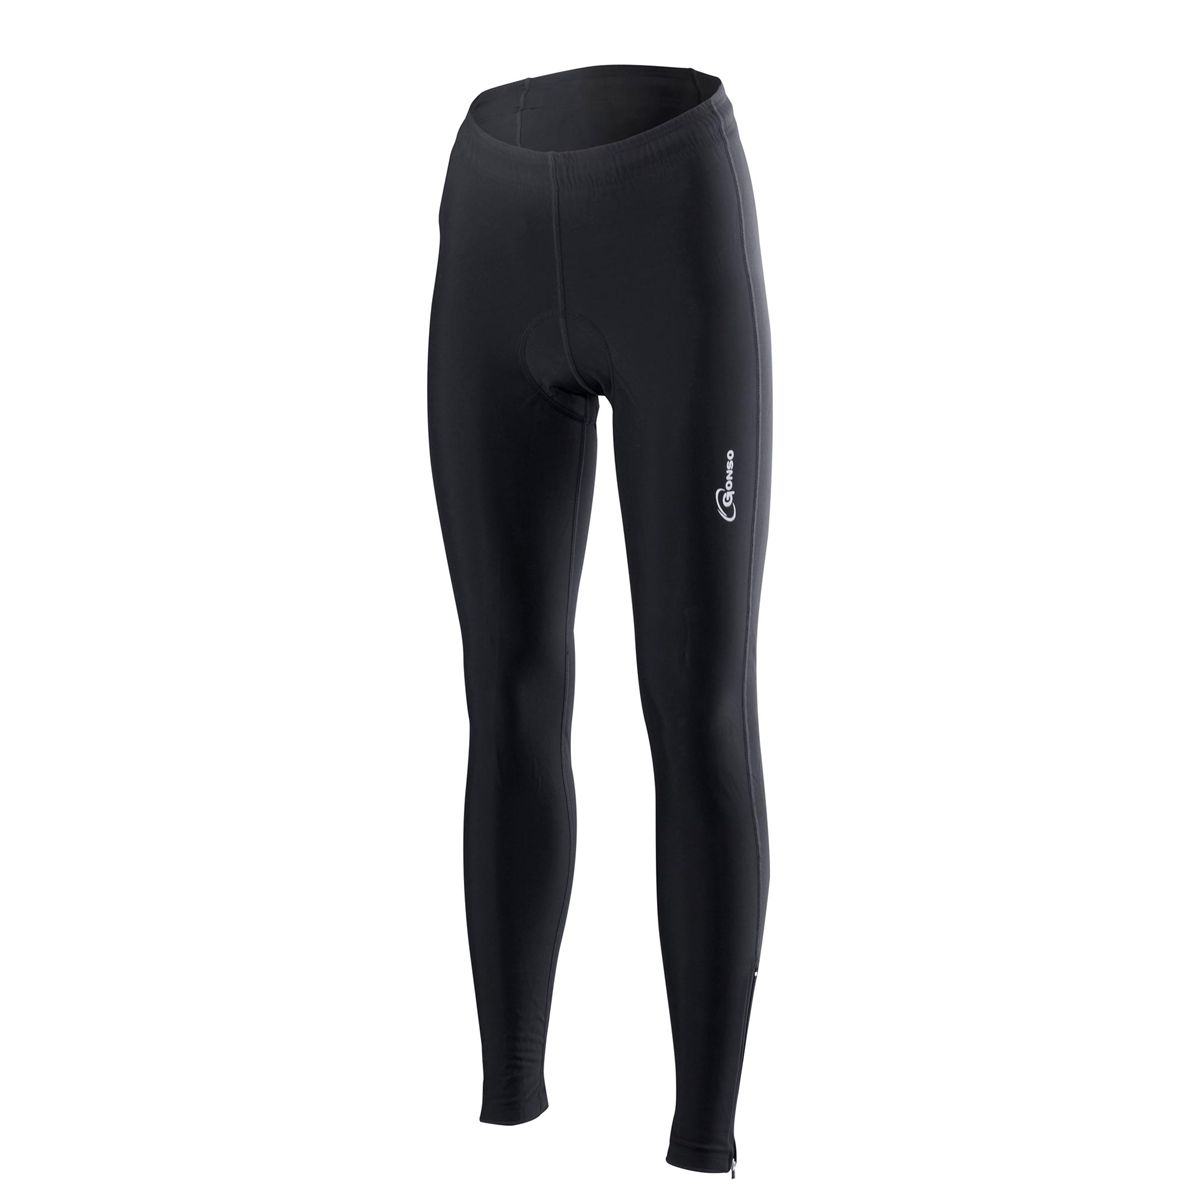 DENVER V2 thermal tights for women, long